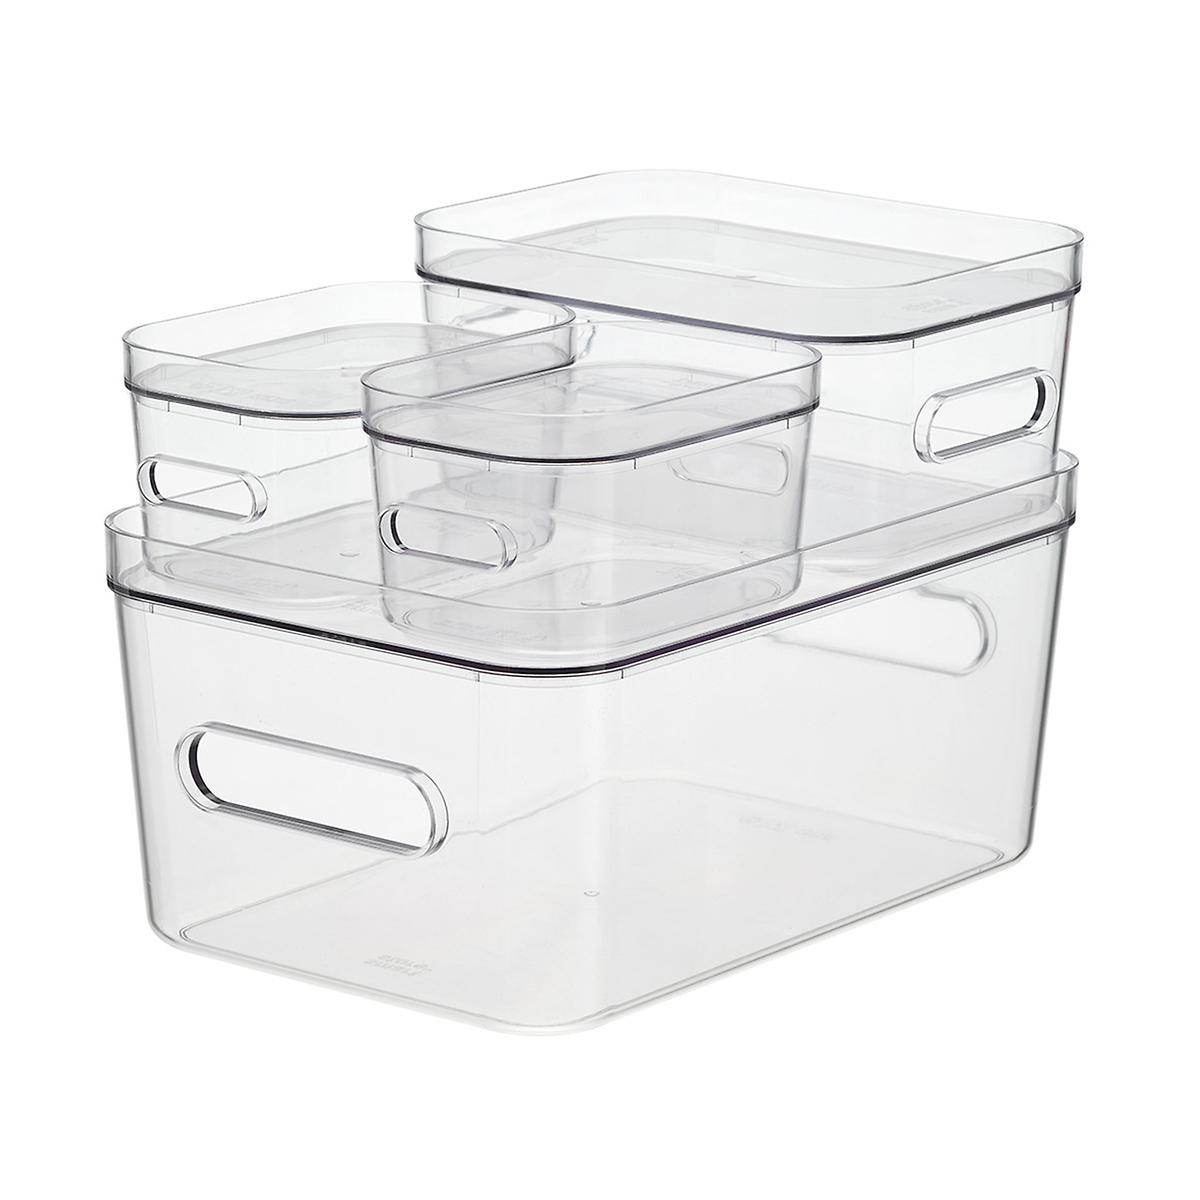 Clear Compact Plastic Bins 4-Pack with Clear Lids